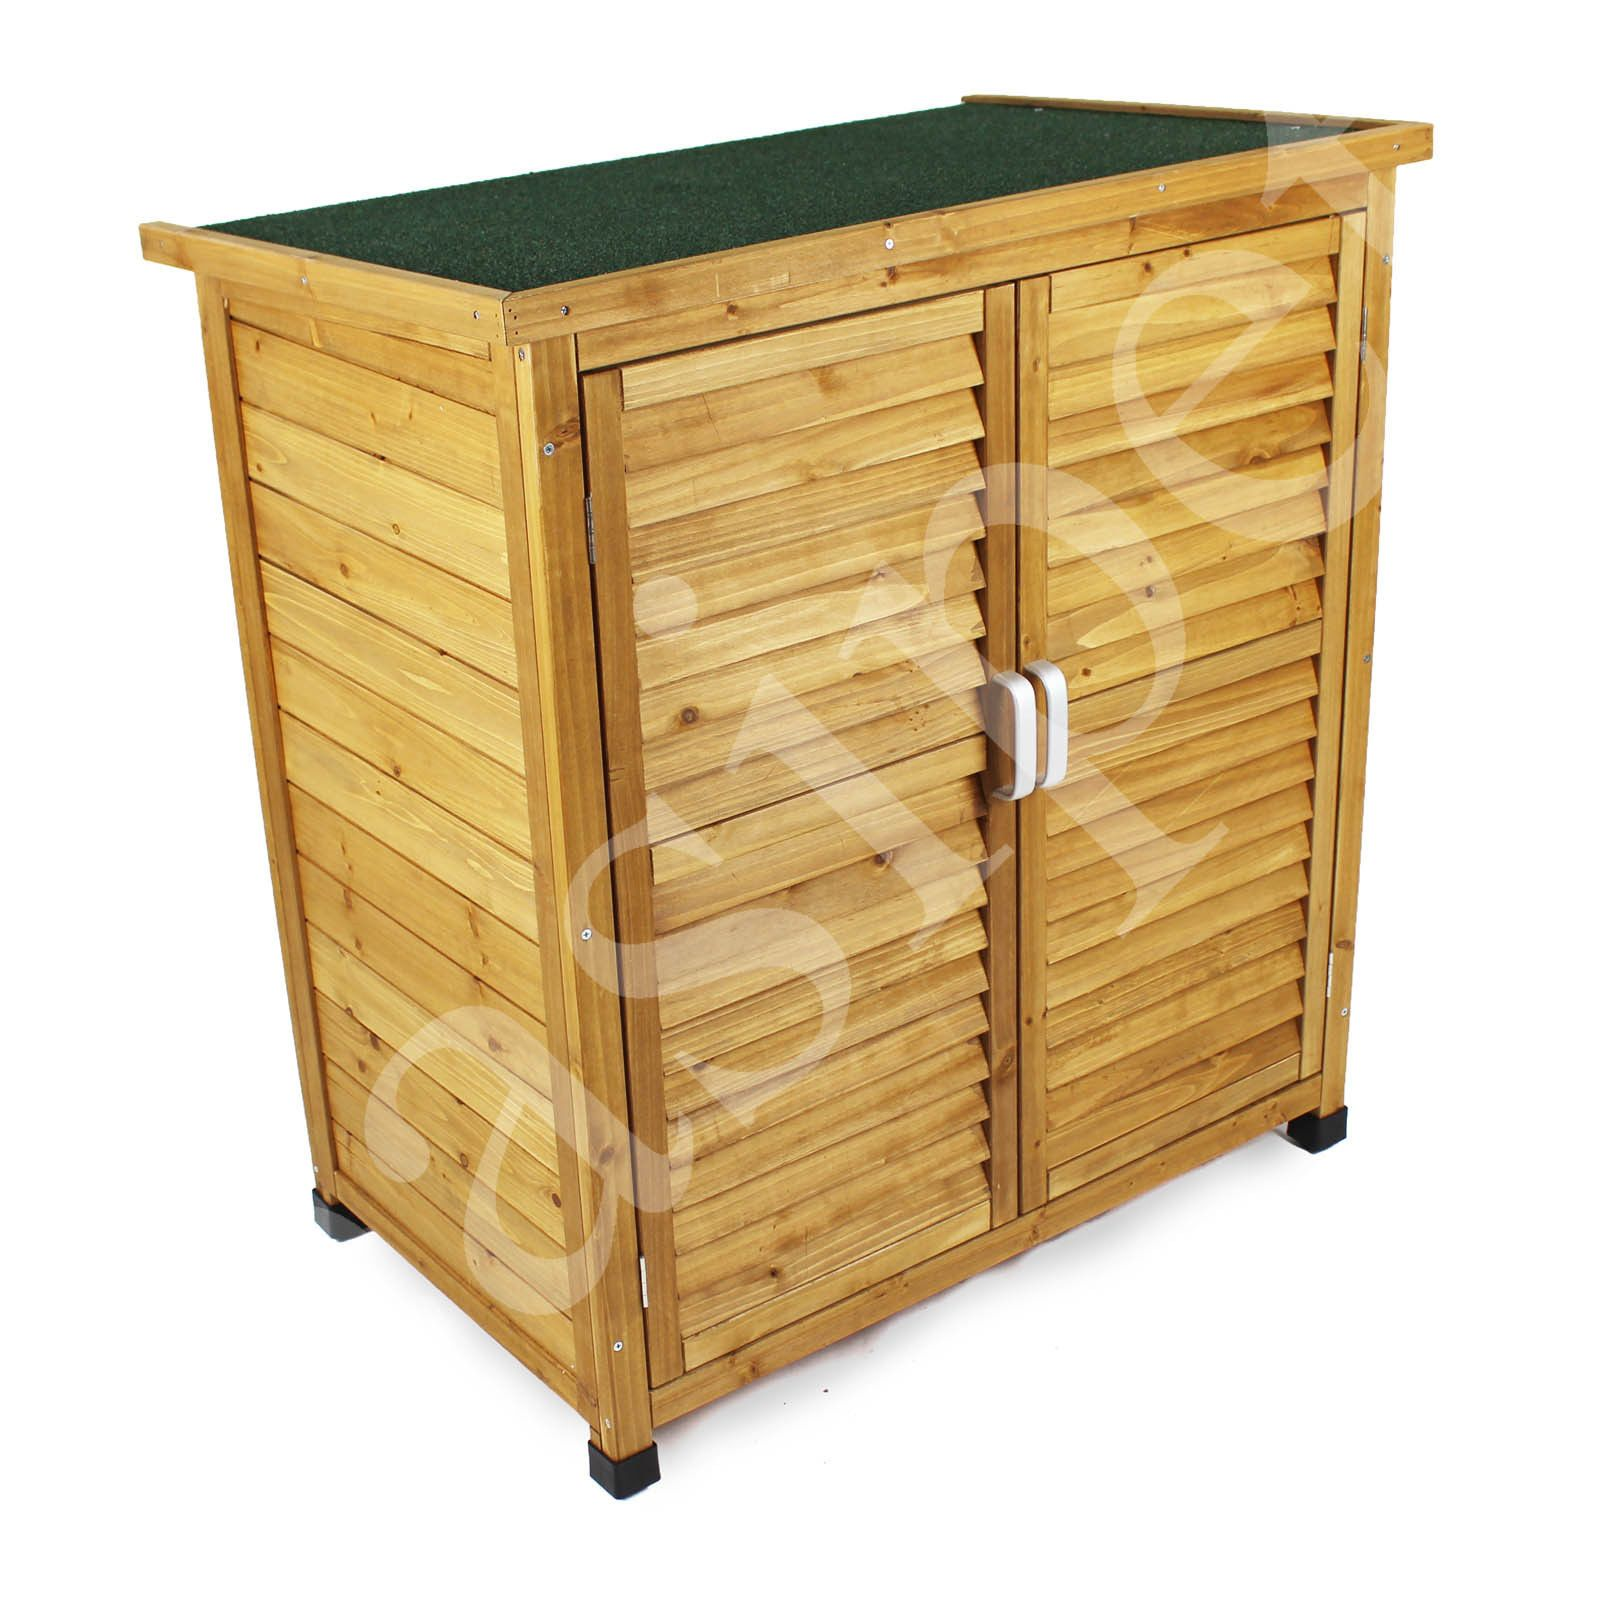 Wood Garden Shed Tool Storage Lawn Mower Outdoor Wooden